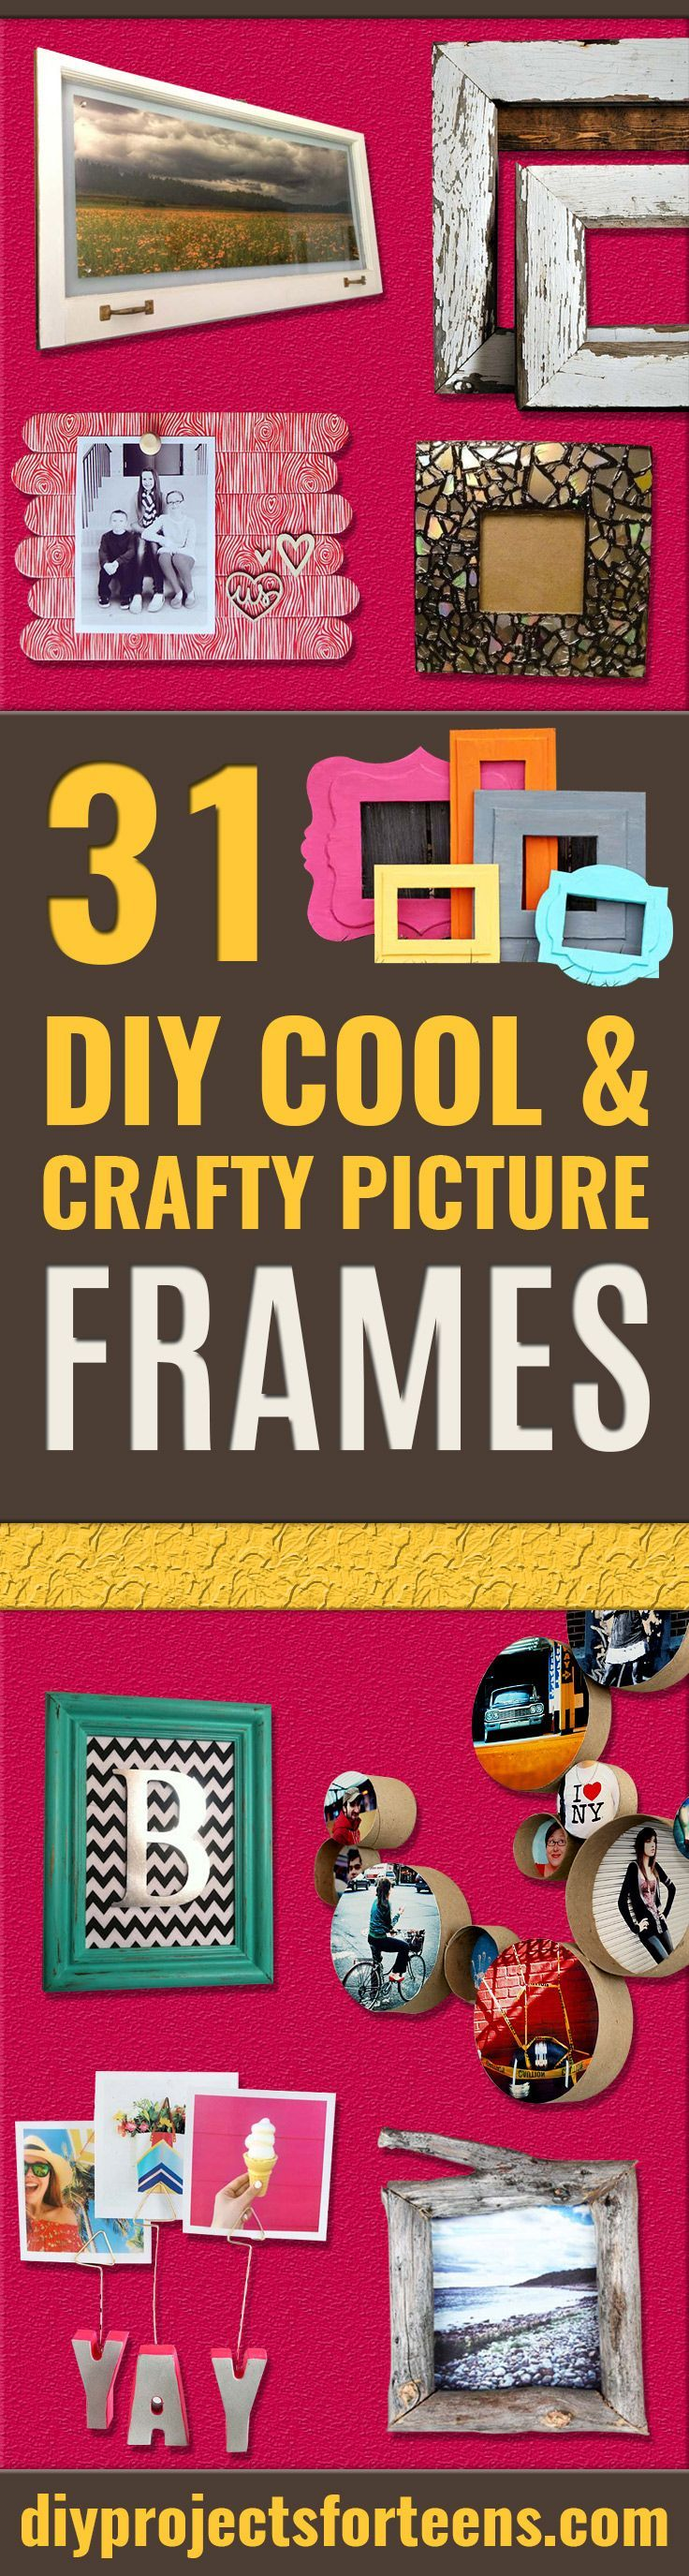 Best DIY Picture Frames and Photo Frame Ideas  - How To Make Cool Handmade Projects from Wood, Canvas, Instagram Photos. Creative Birthday Gifts, Fun Crafts for Friends and Wall Art Tutorials http://diyprojectsforteens.com/diy-picture-frames